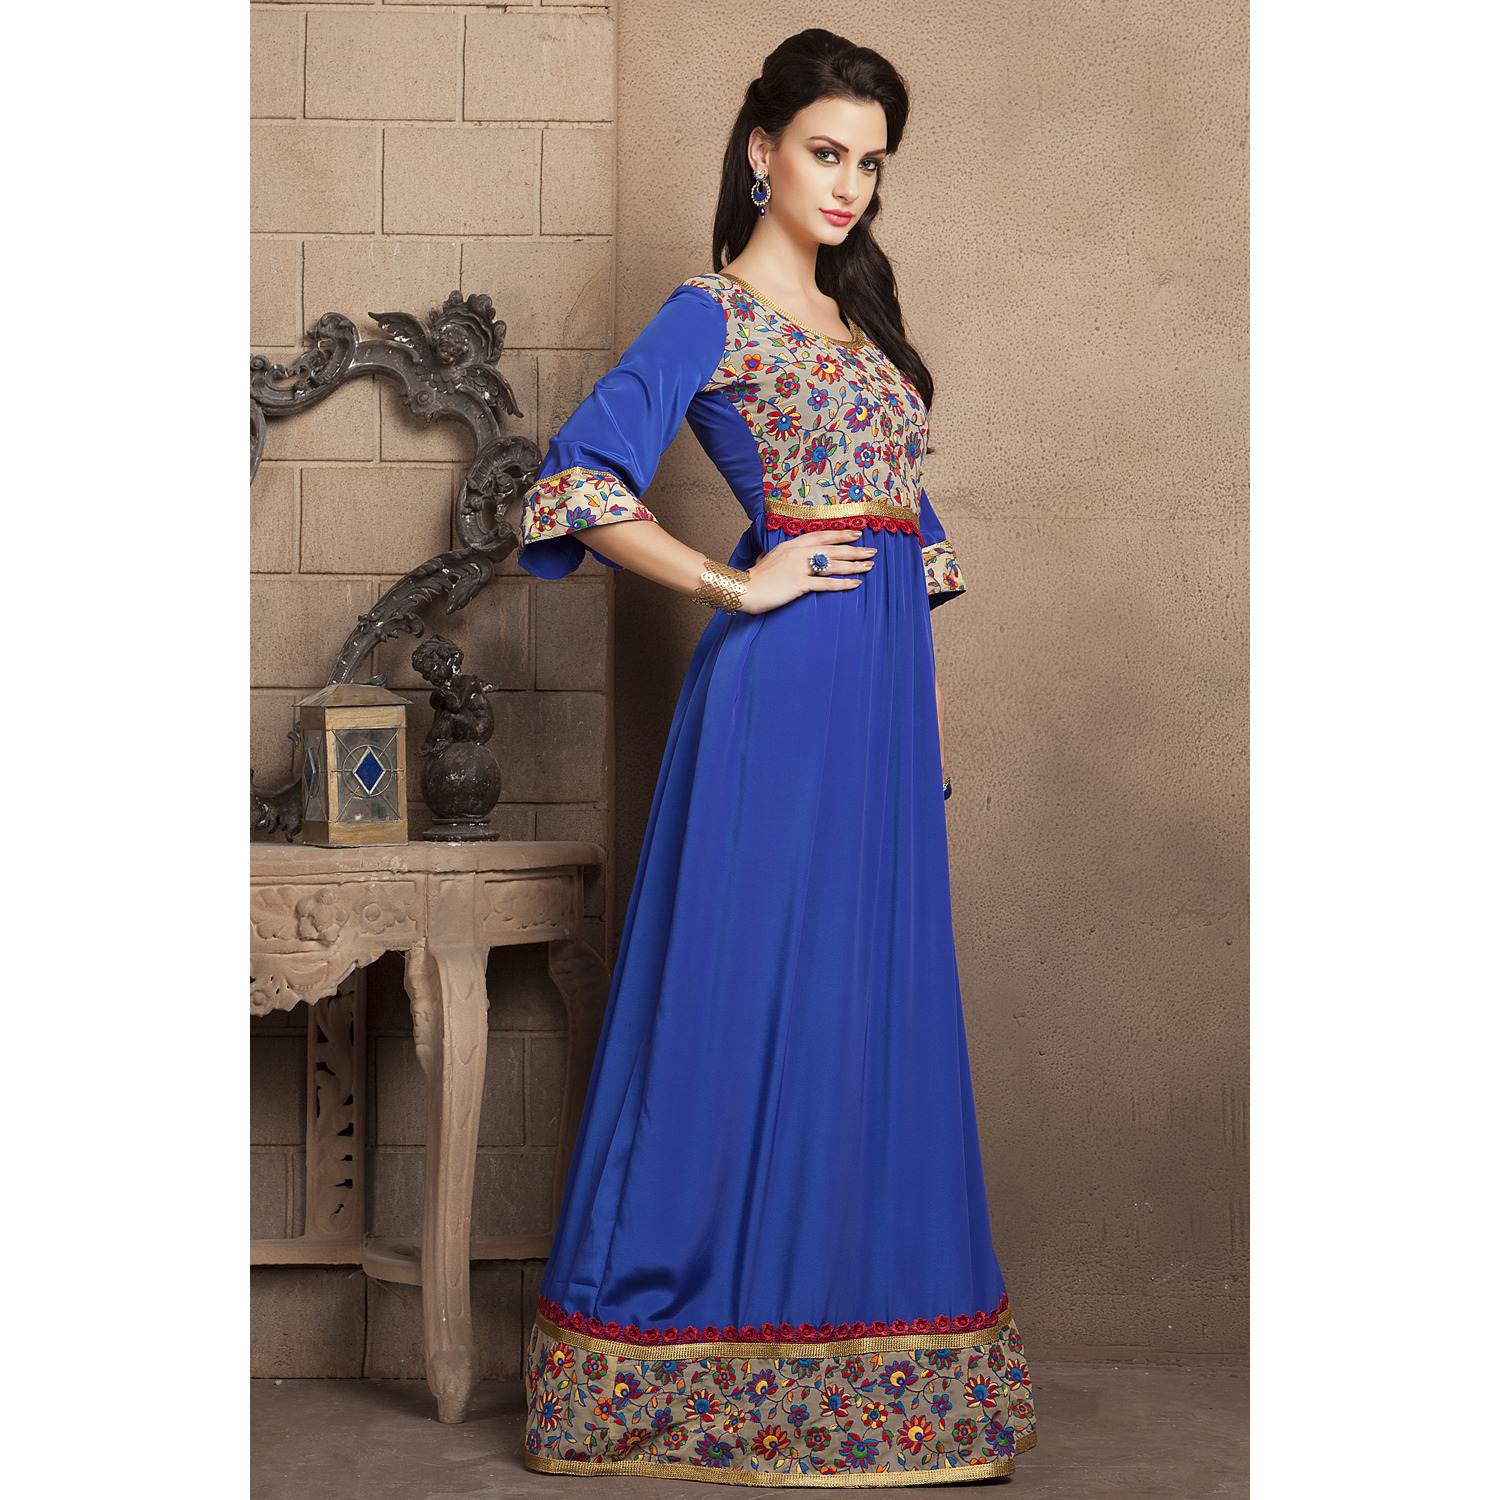 Royal Blue Color Casual Maxi Dress With French Crepe and Lace Work (Size:XS)